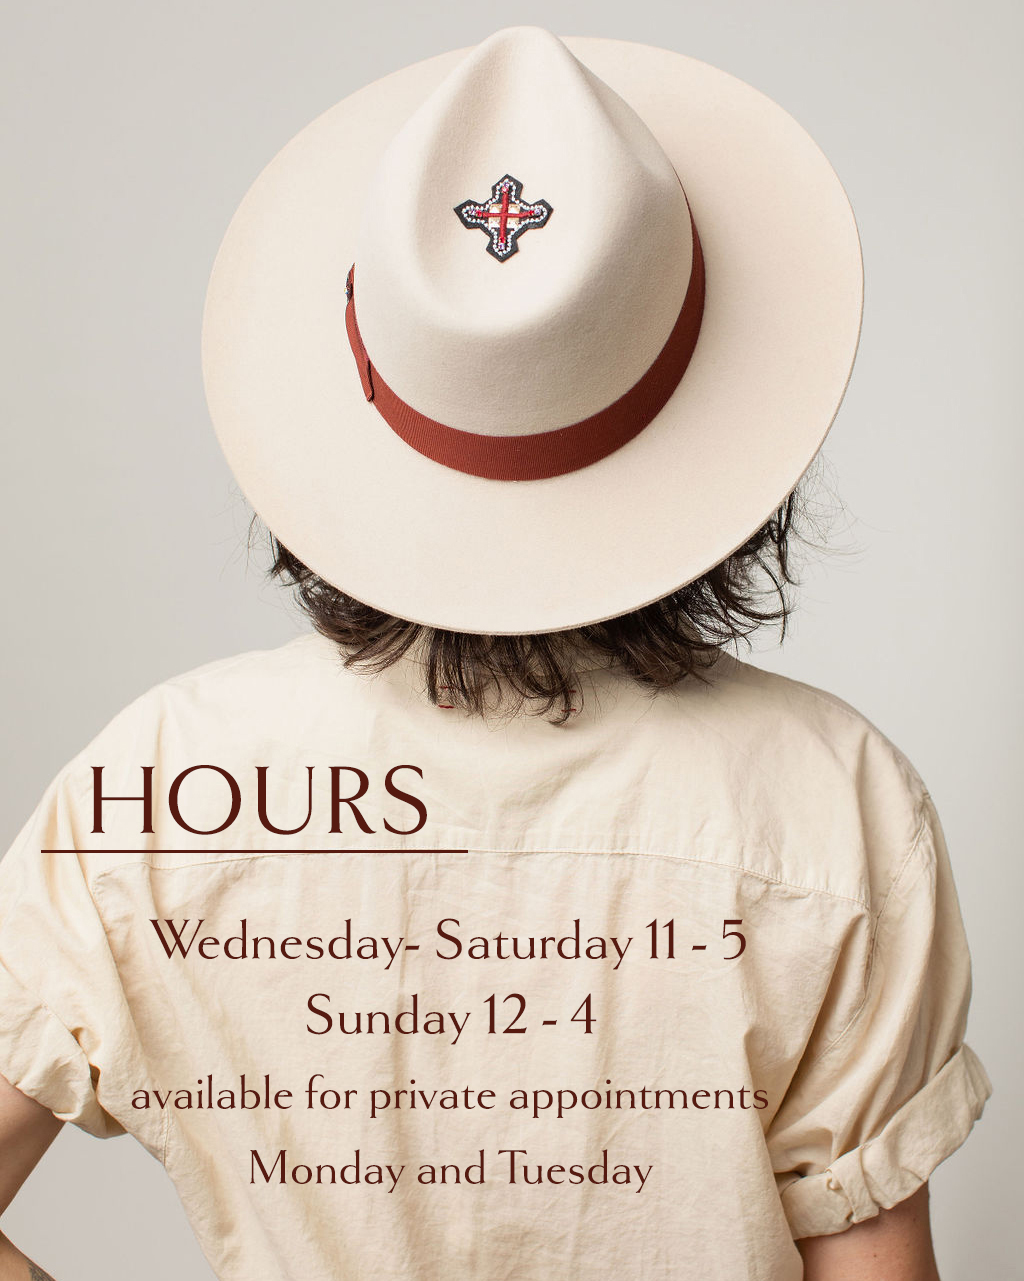 updated hours 10.2020